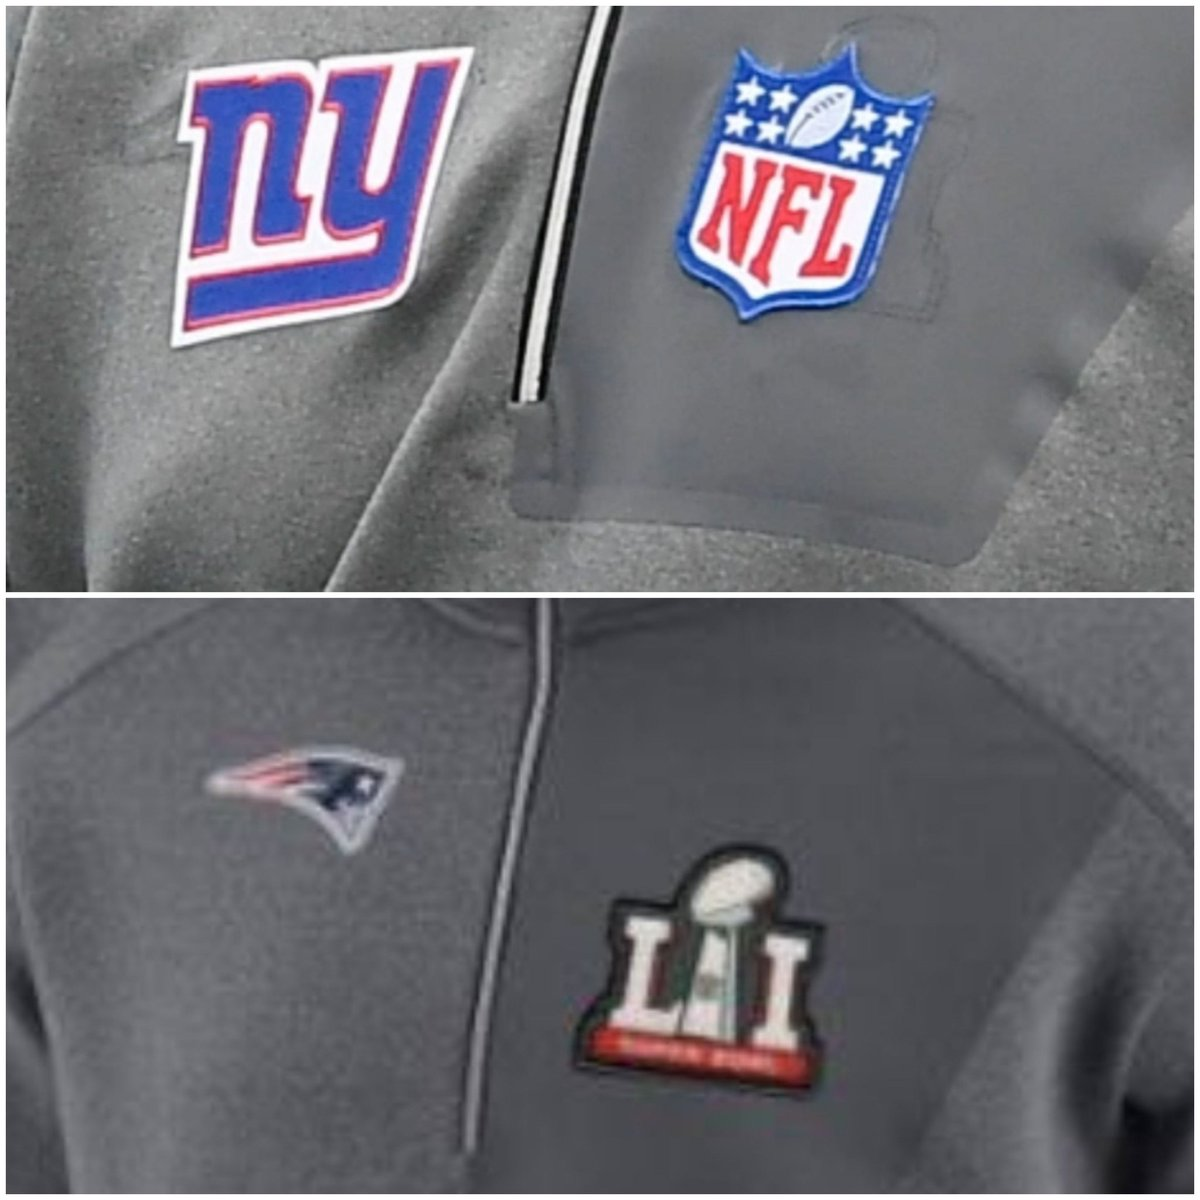 @yovinney @UniWatch Cleaner image of wear Judge's Super Bowl patch was with the outline of the SB 51 logo visible. https://t.co/G61fFd3QiJ